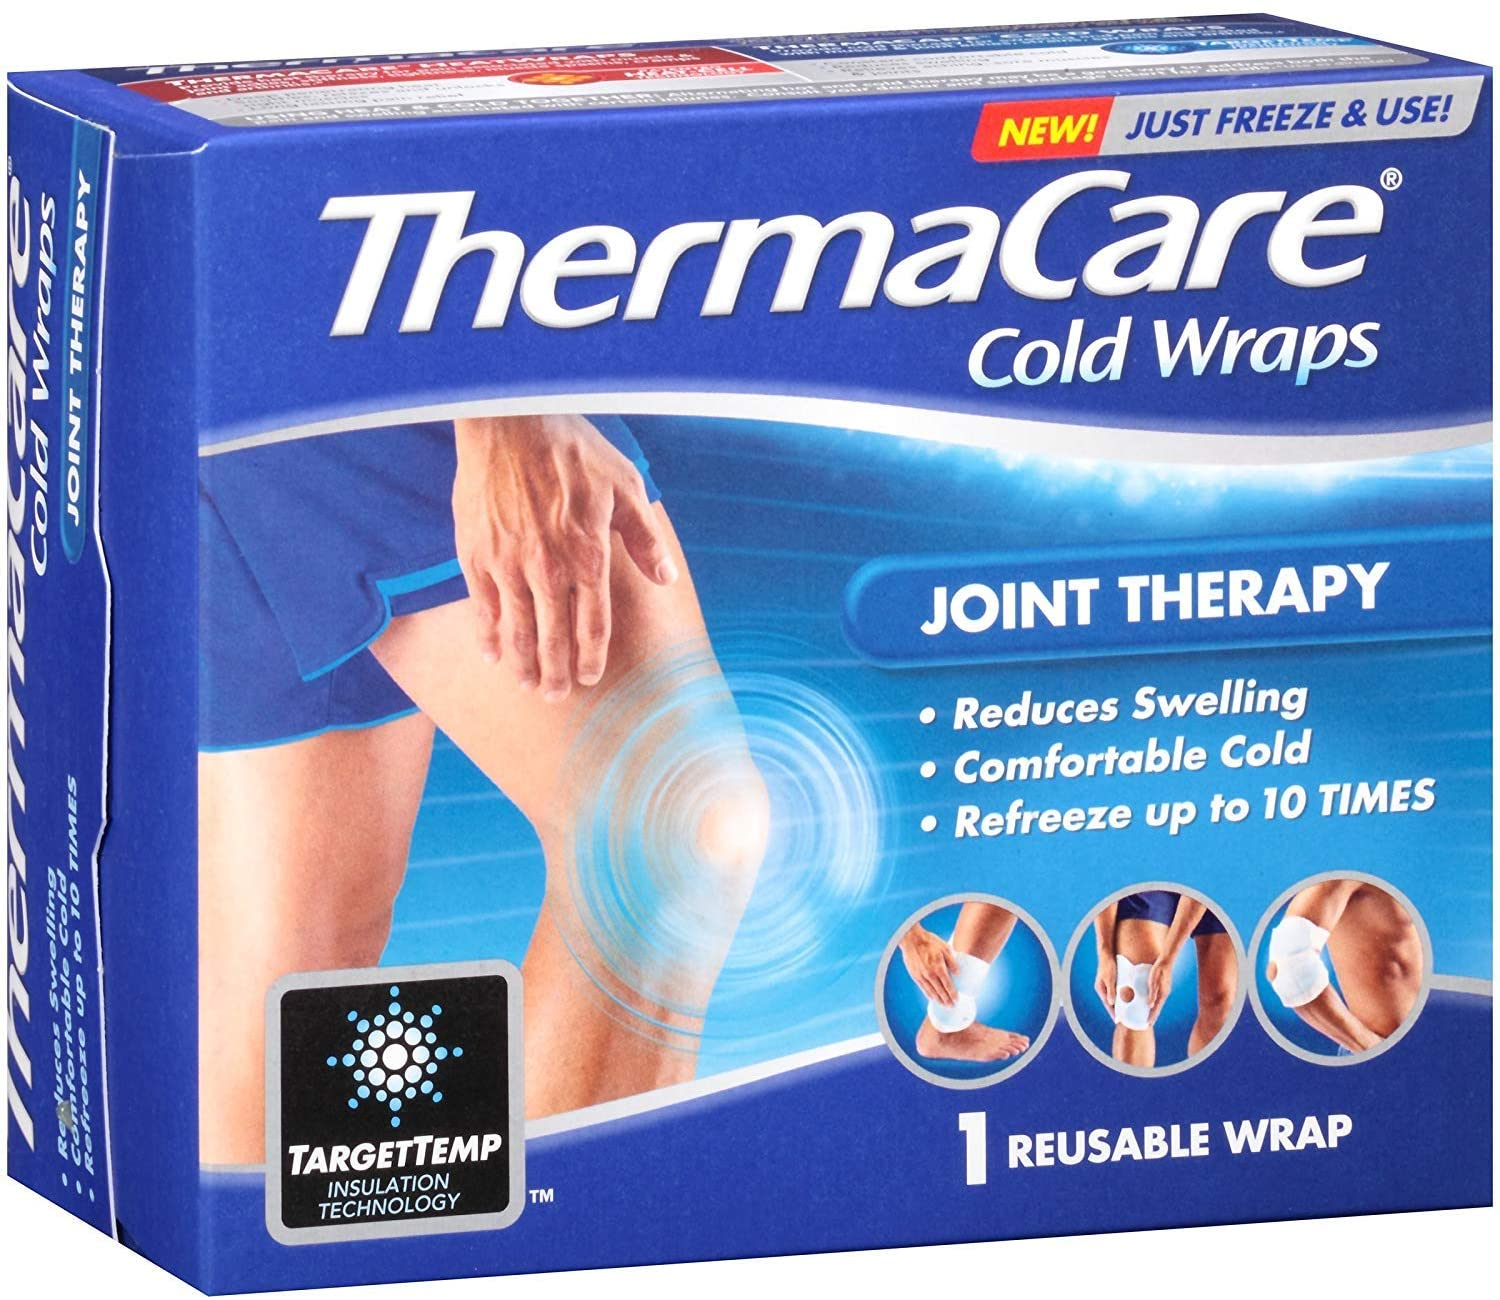 ThermaCare Reusable Cold Wraps Joint Therapy 1 ea (Pack of 2)